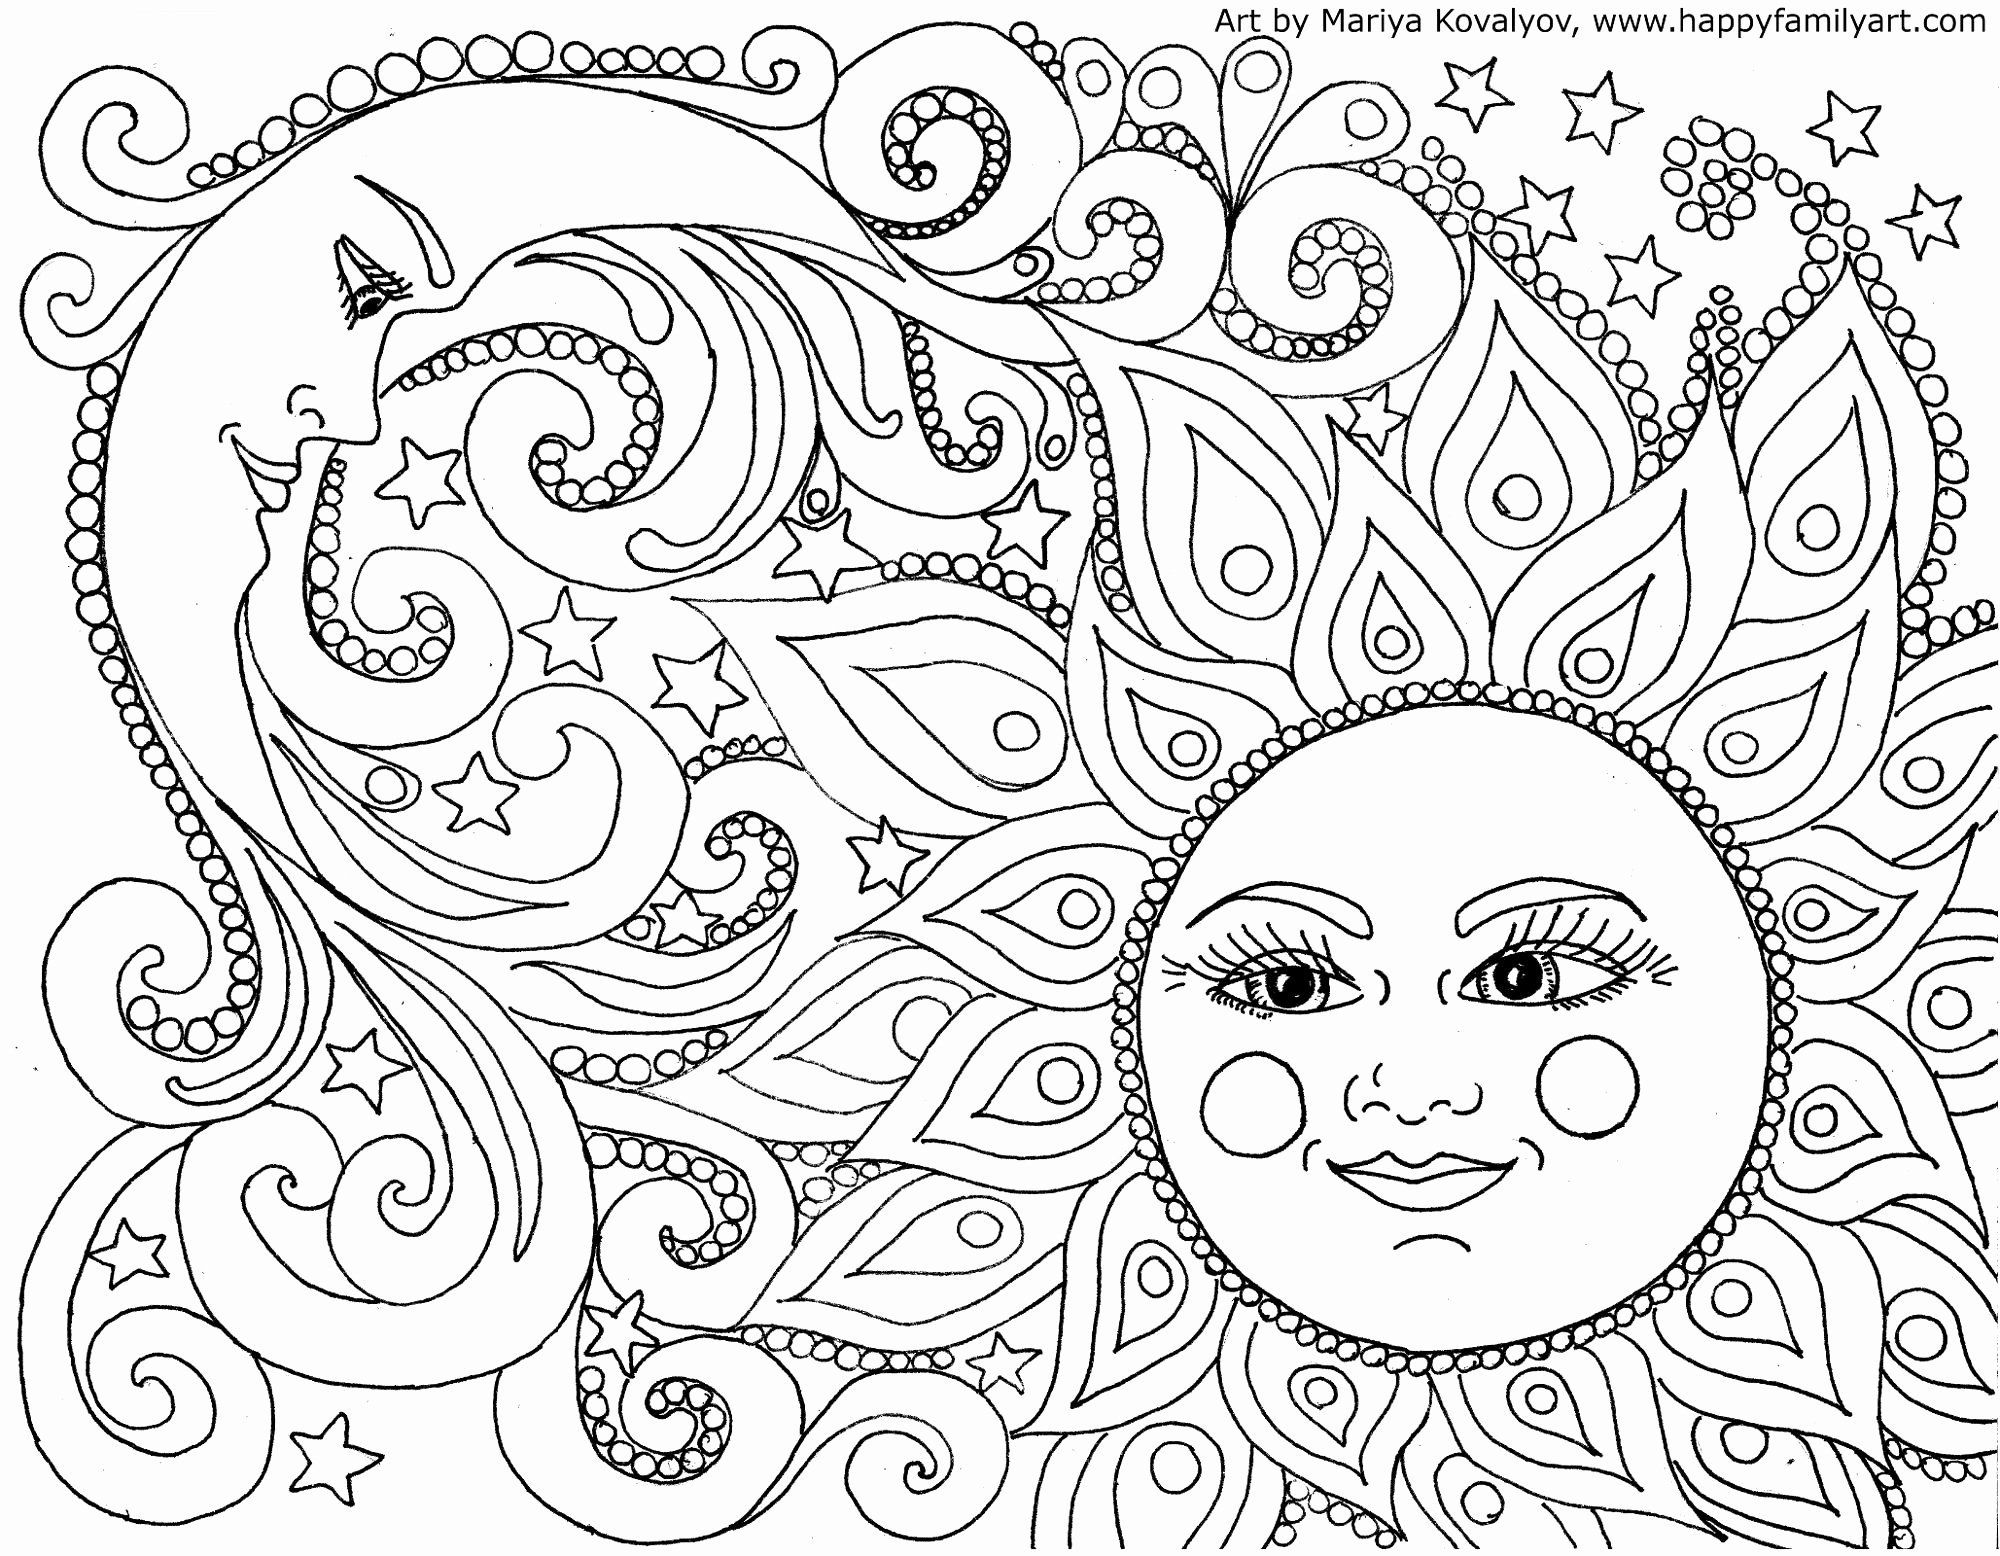 Hard To Color Coloring Pages Elegant Hard Coloring Pages In 2020 Moon Coloring Pages Mandala Coloring Pages Abstract Coloring Pages